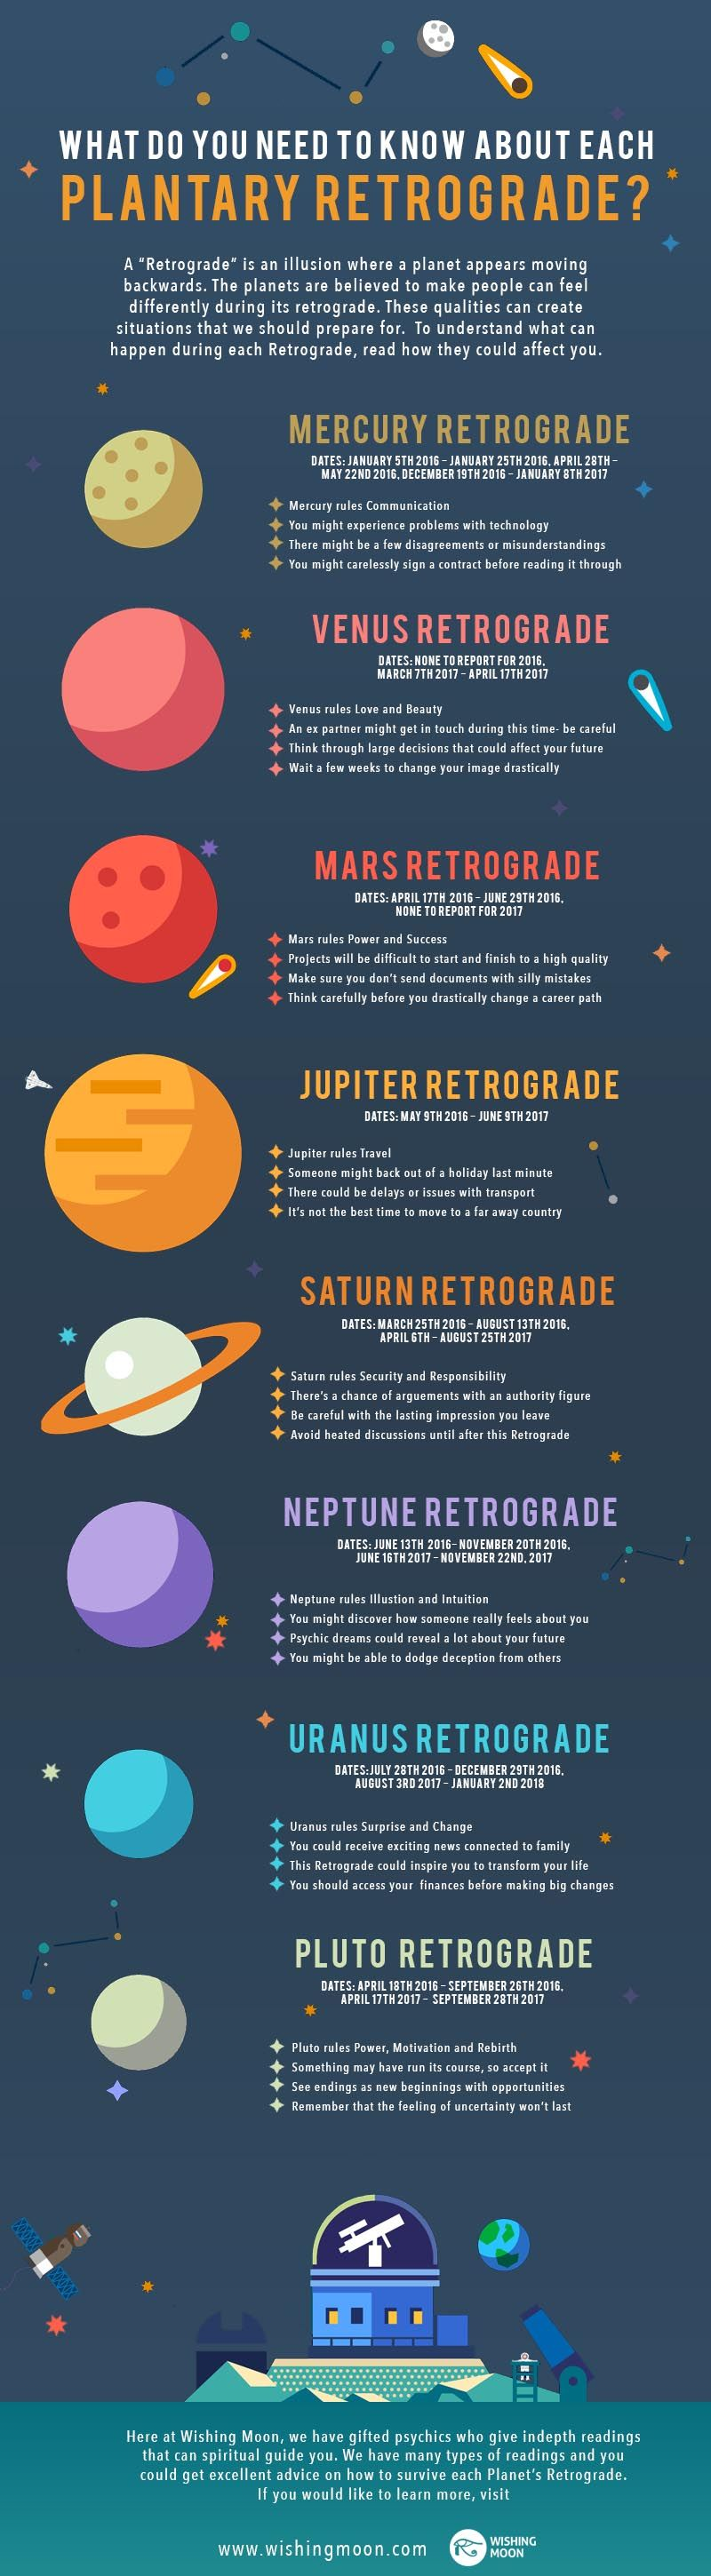 Planetery retrograde infographic zodiac pinterest planetery retrograde infographic nvjuhfo Image collections